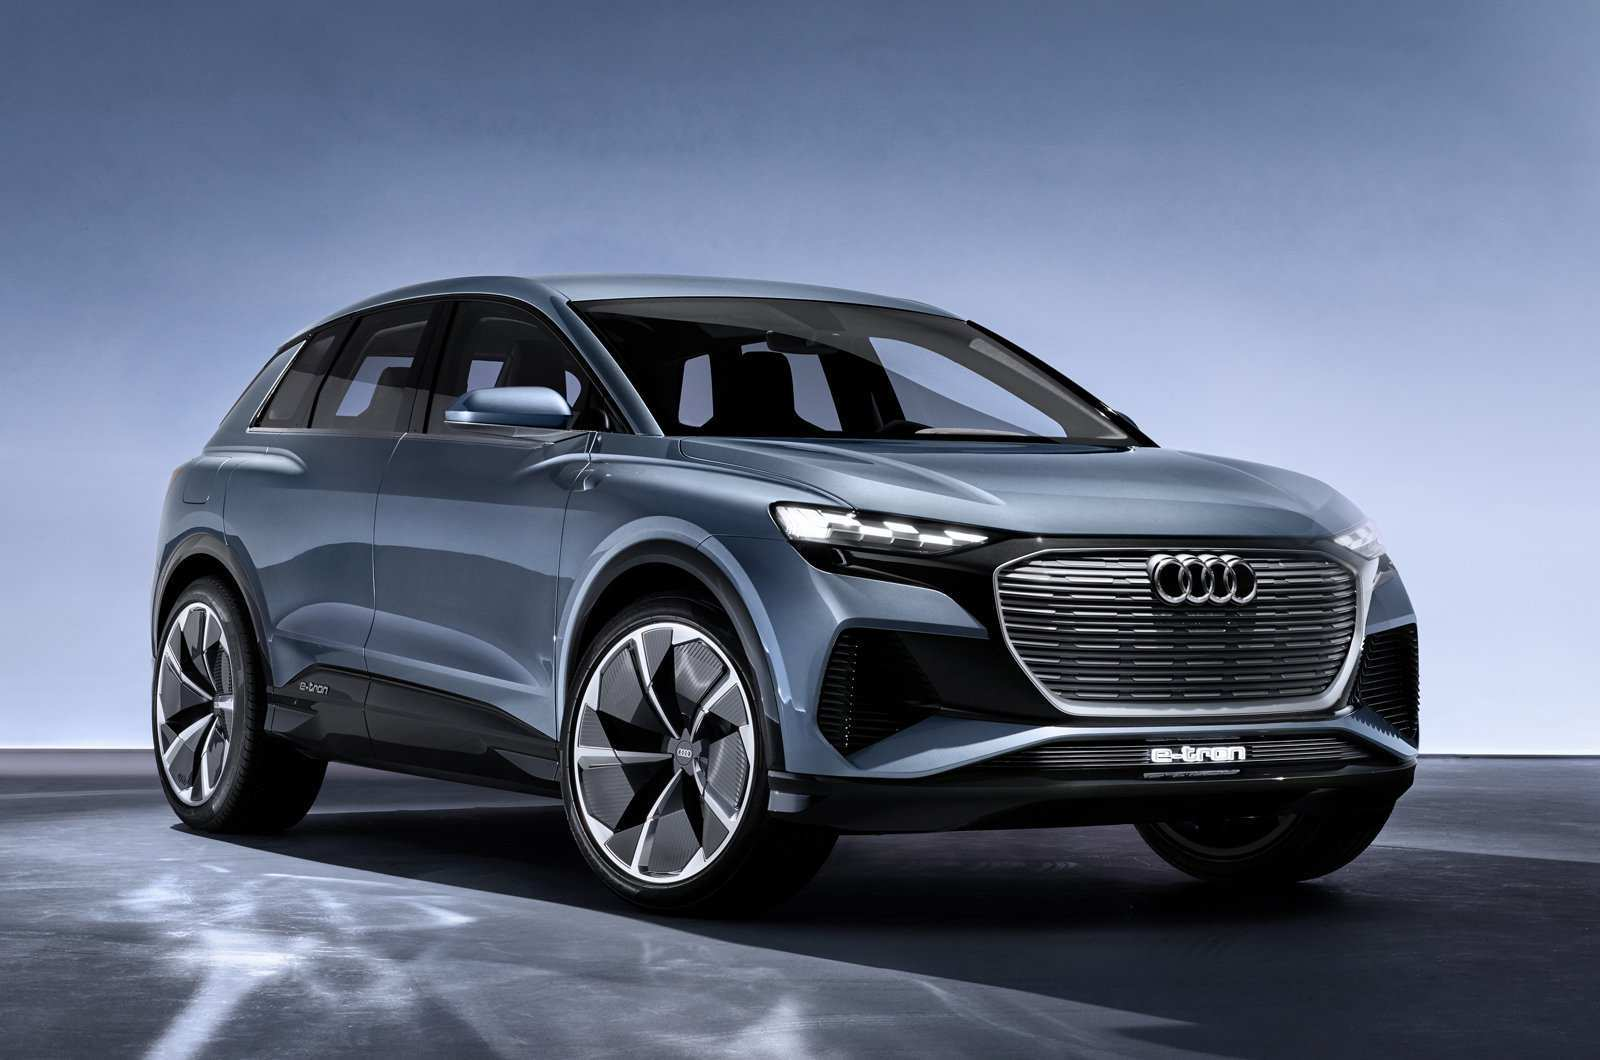 75 Best Review Audi Electric Cars 2020 Speed Test for Audi Electric Cars 2020